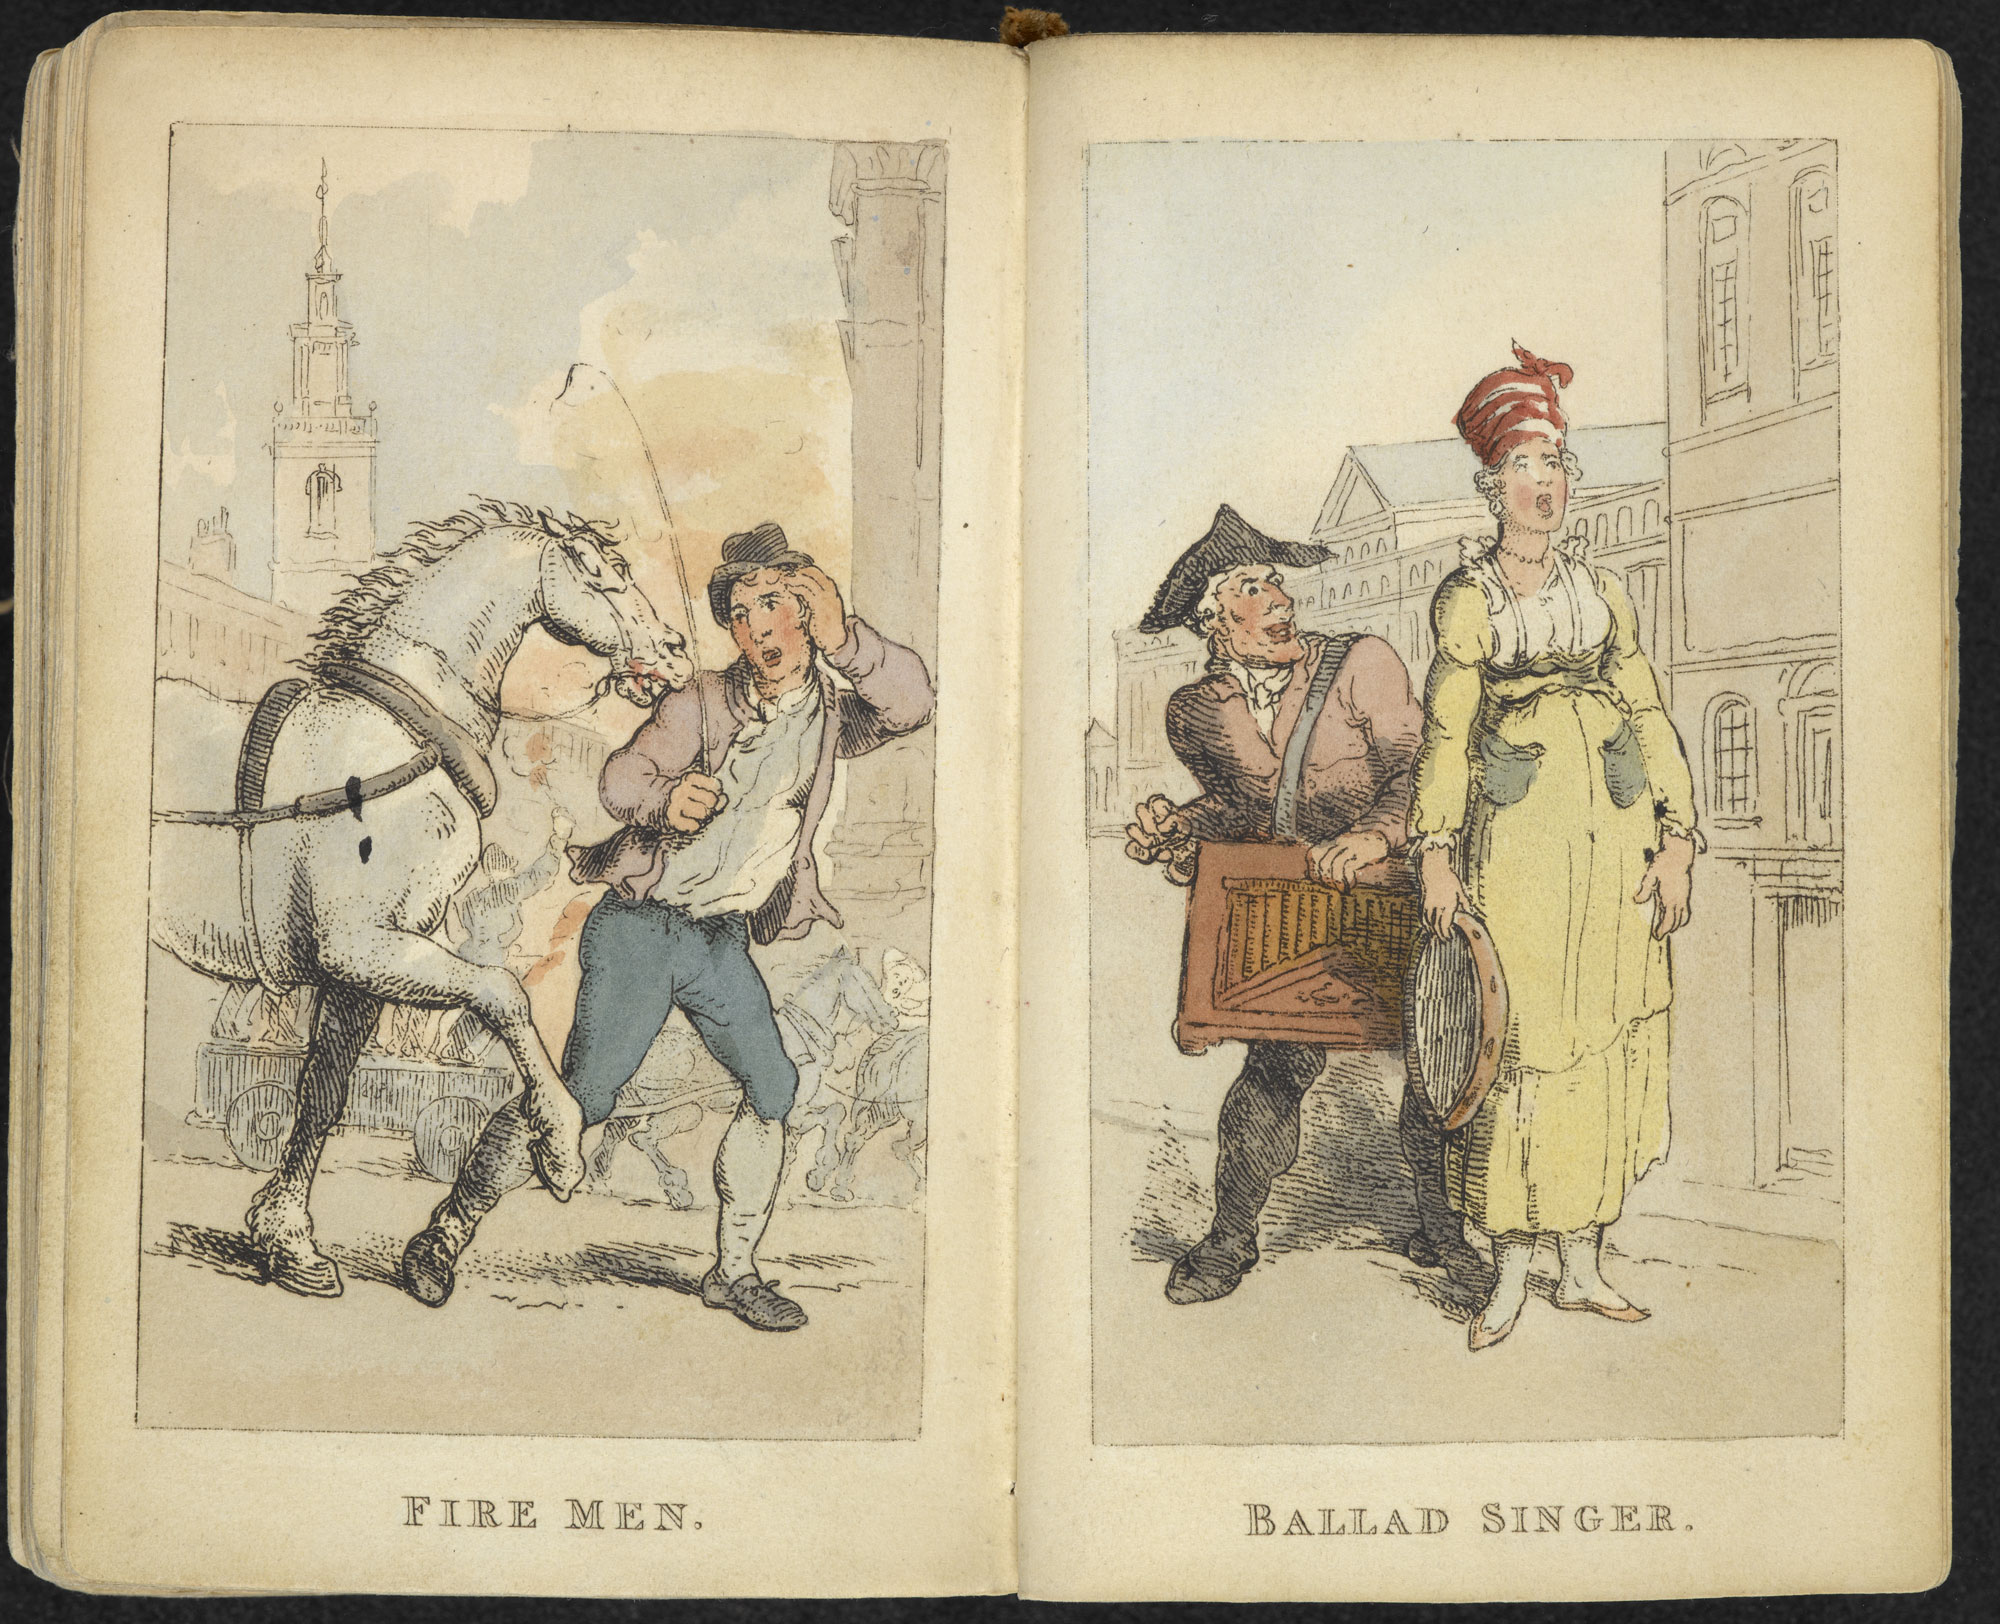 Rowlandson's Characteristic Sketches of the Lower Orders [page: ['Fire men'] and ['Ballad singer']]